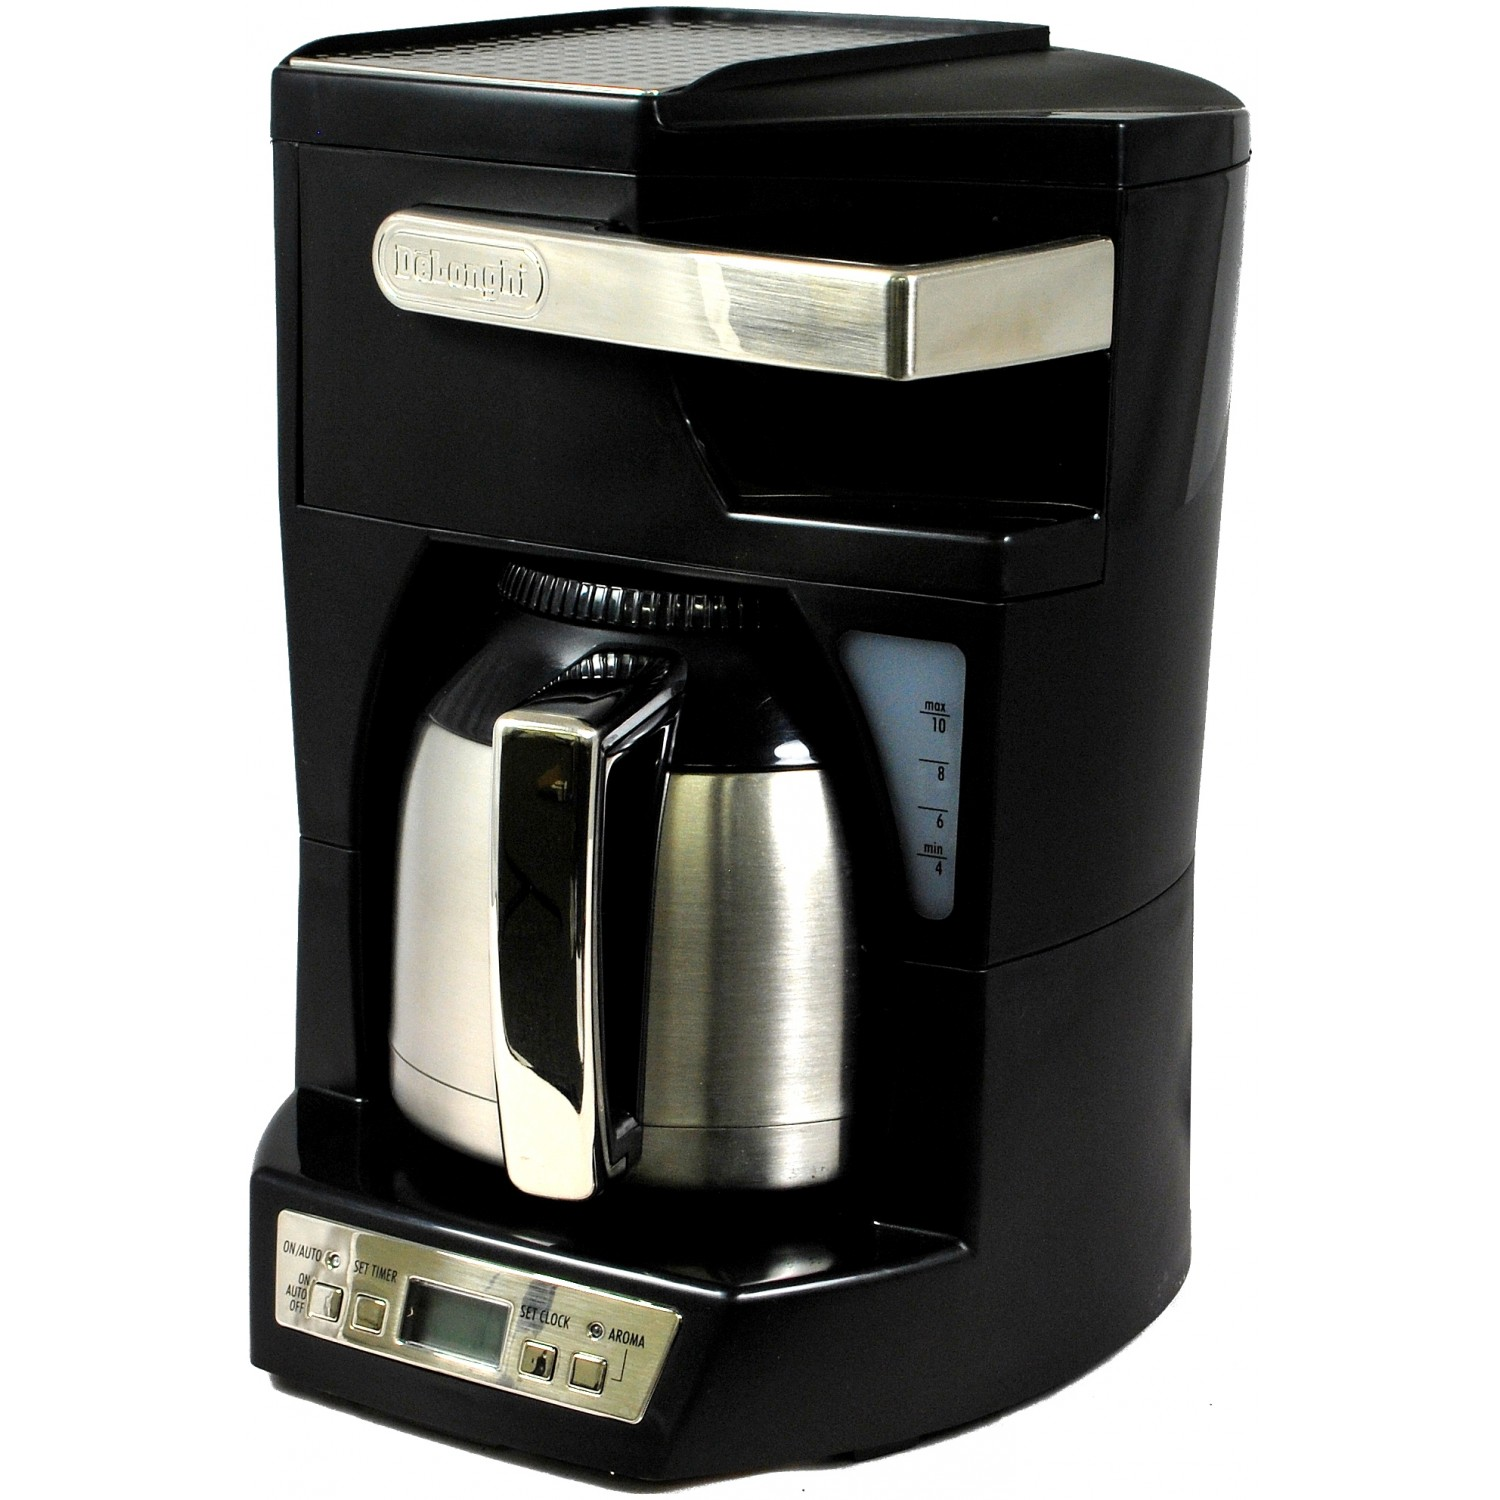 DeLonghi ICM 40 T Filter Coffee Machine with Timer 900 W New With Box Dealer eBay